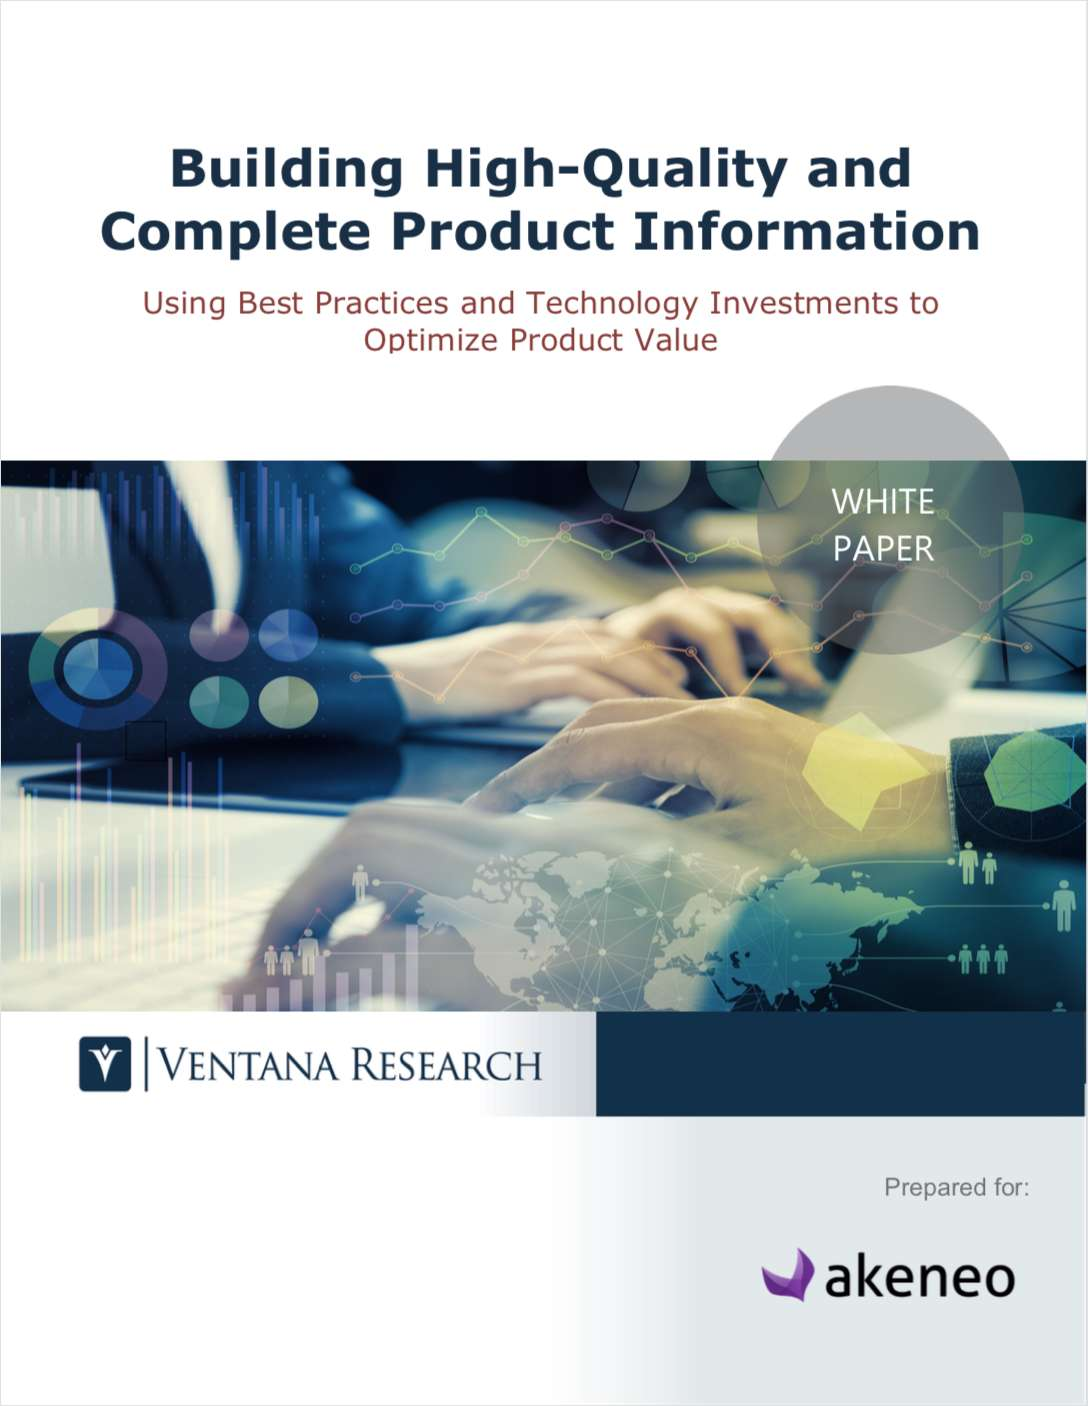 Building High-Quality and Complete Product Information: Using Best Practces and Technology Investments to Optimize Product Value